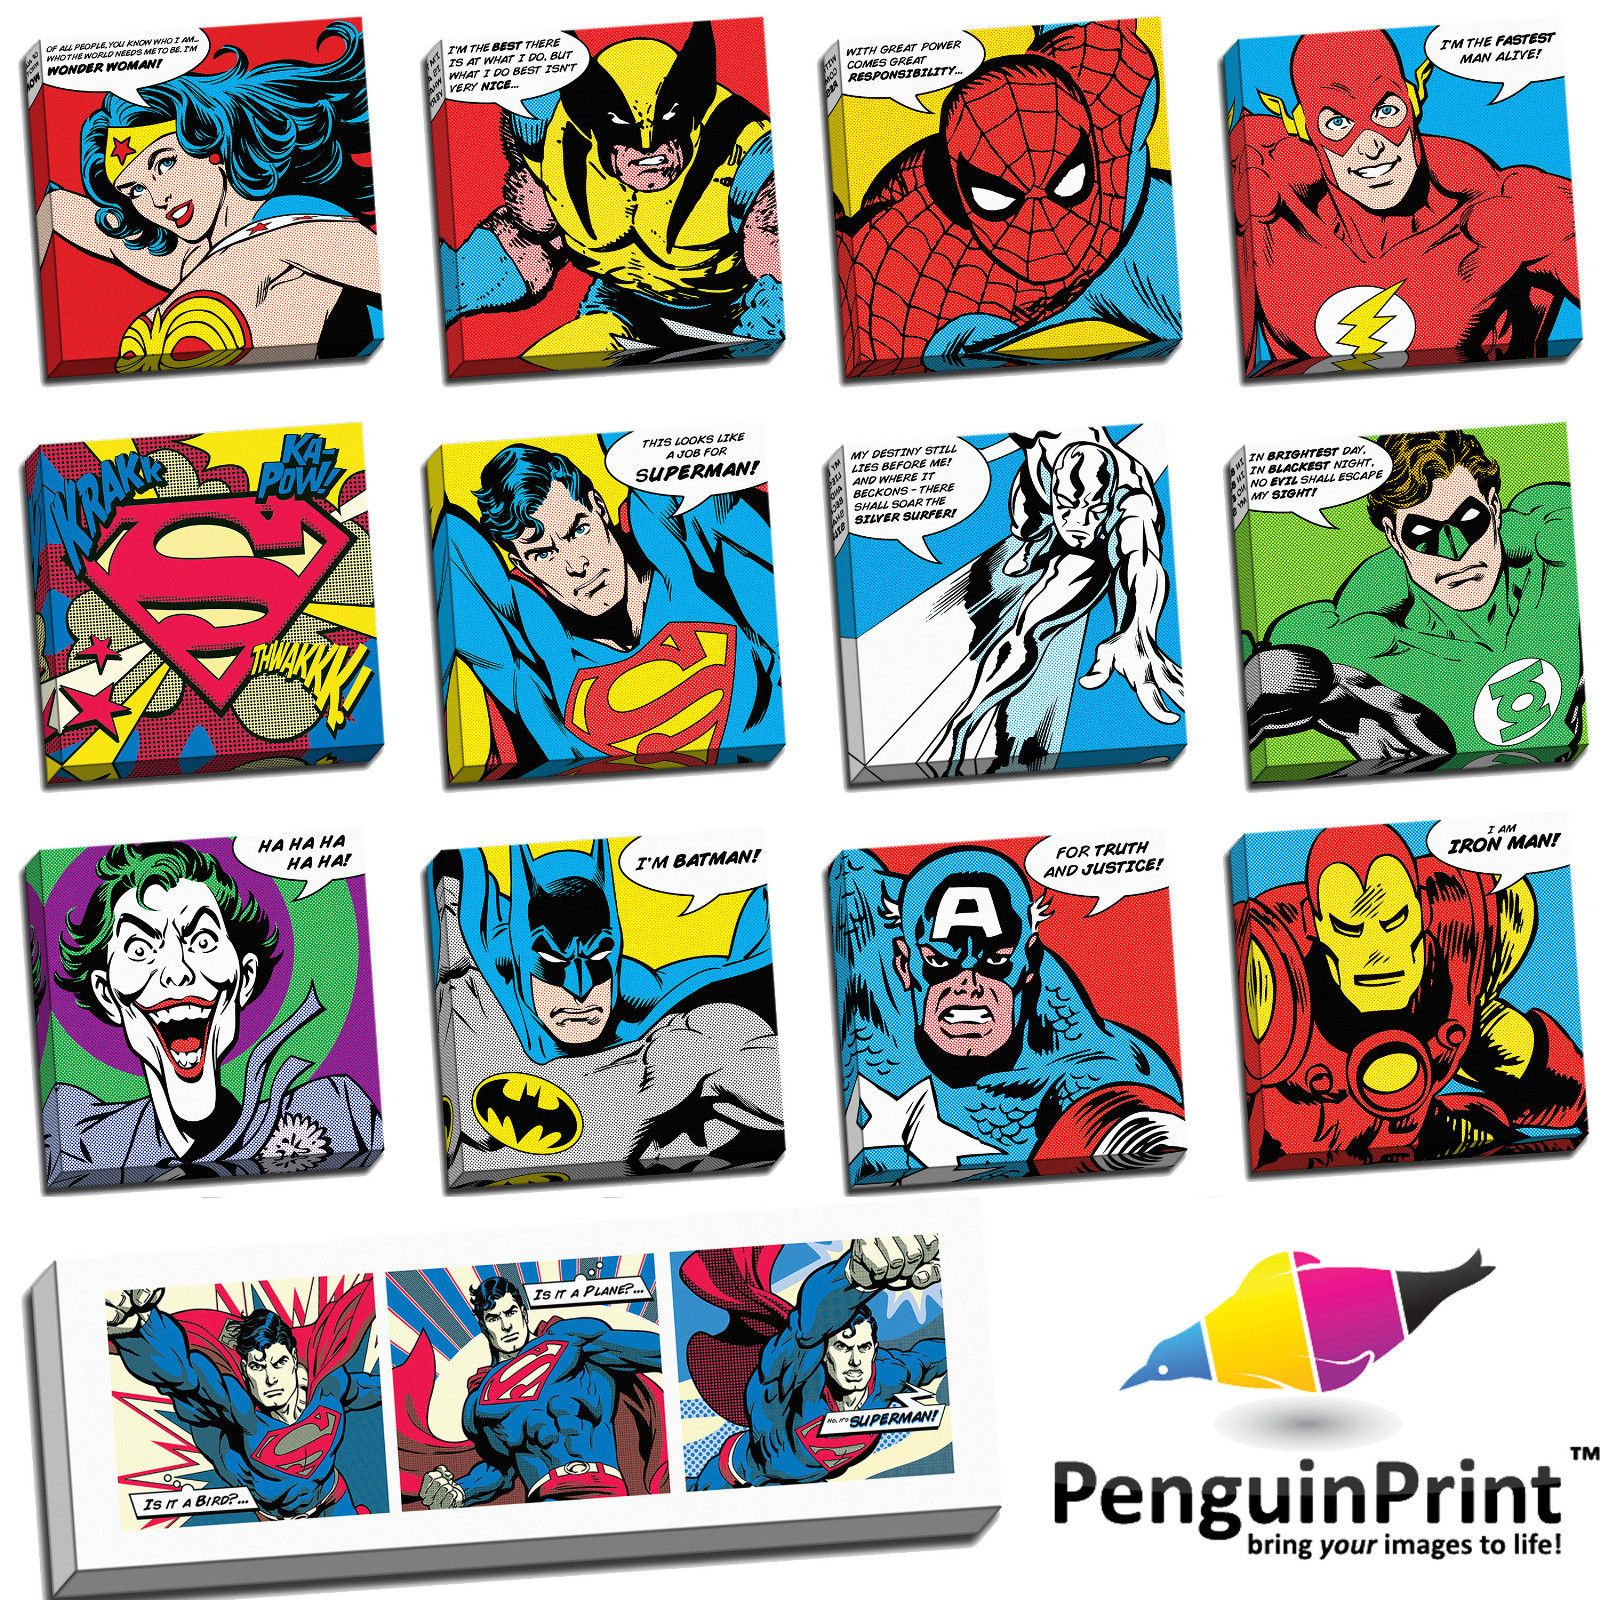 Details About Retro Pop Art Comic Book Ben Day Wall Art On Premium